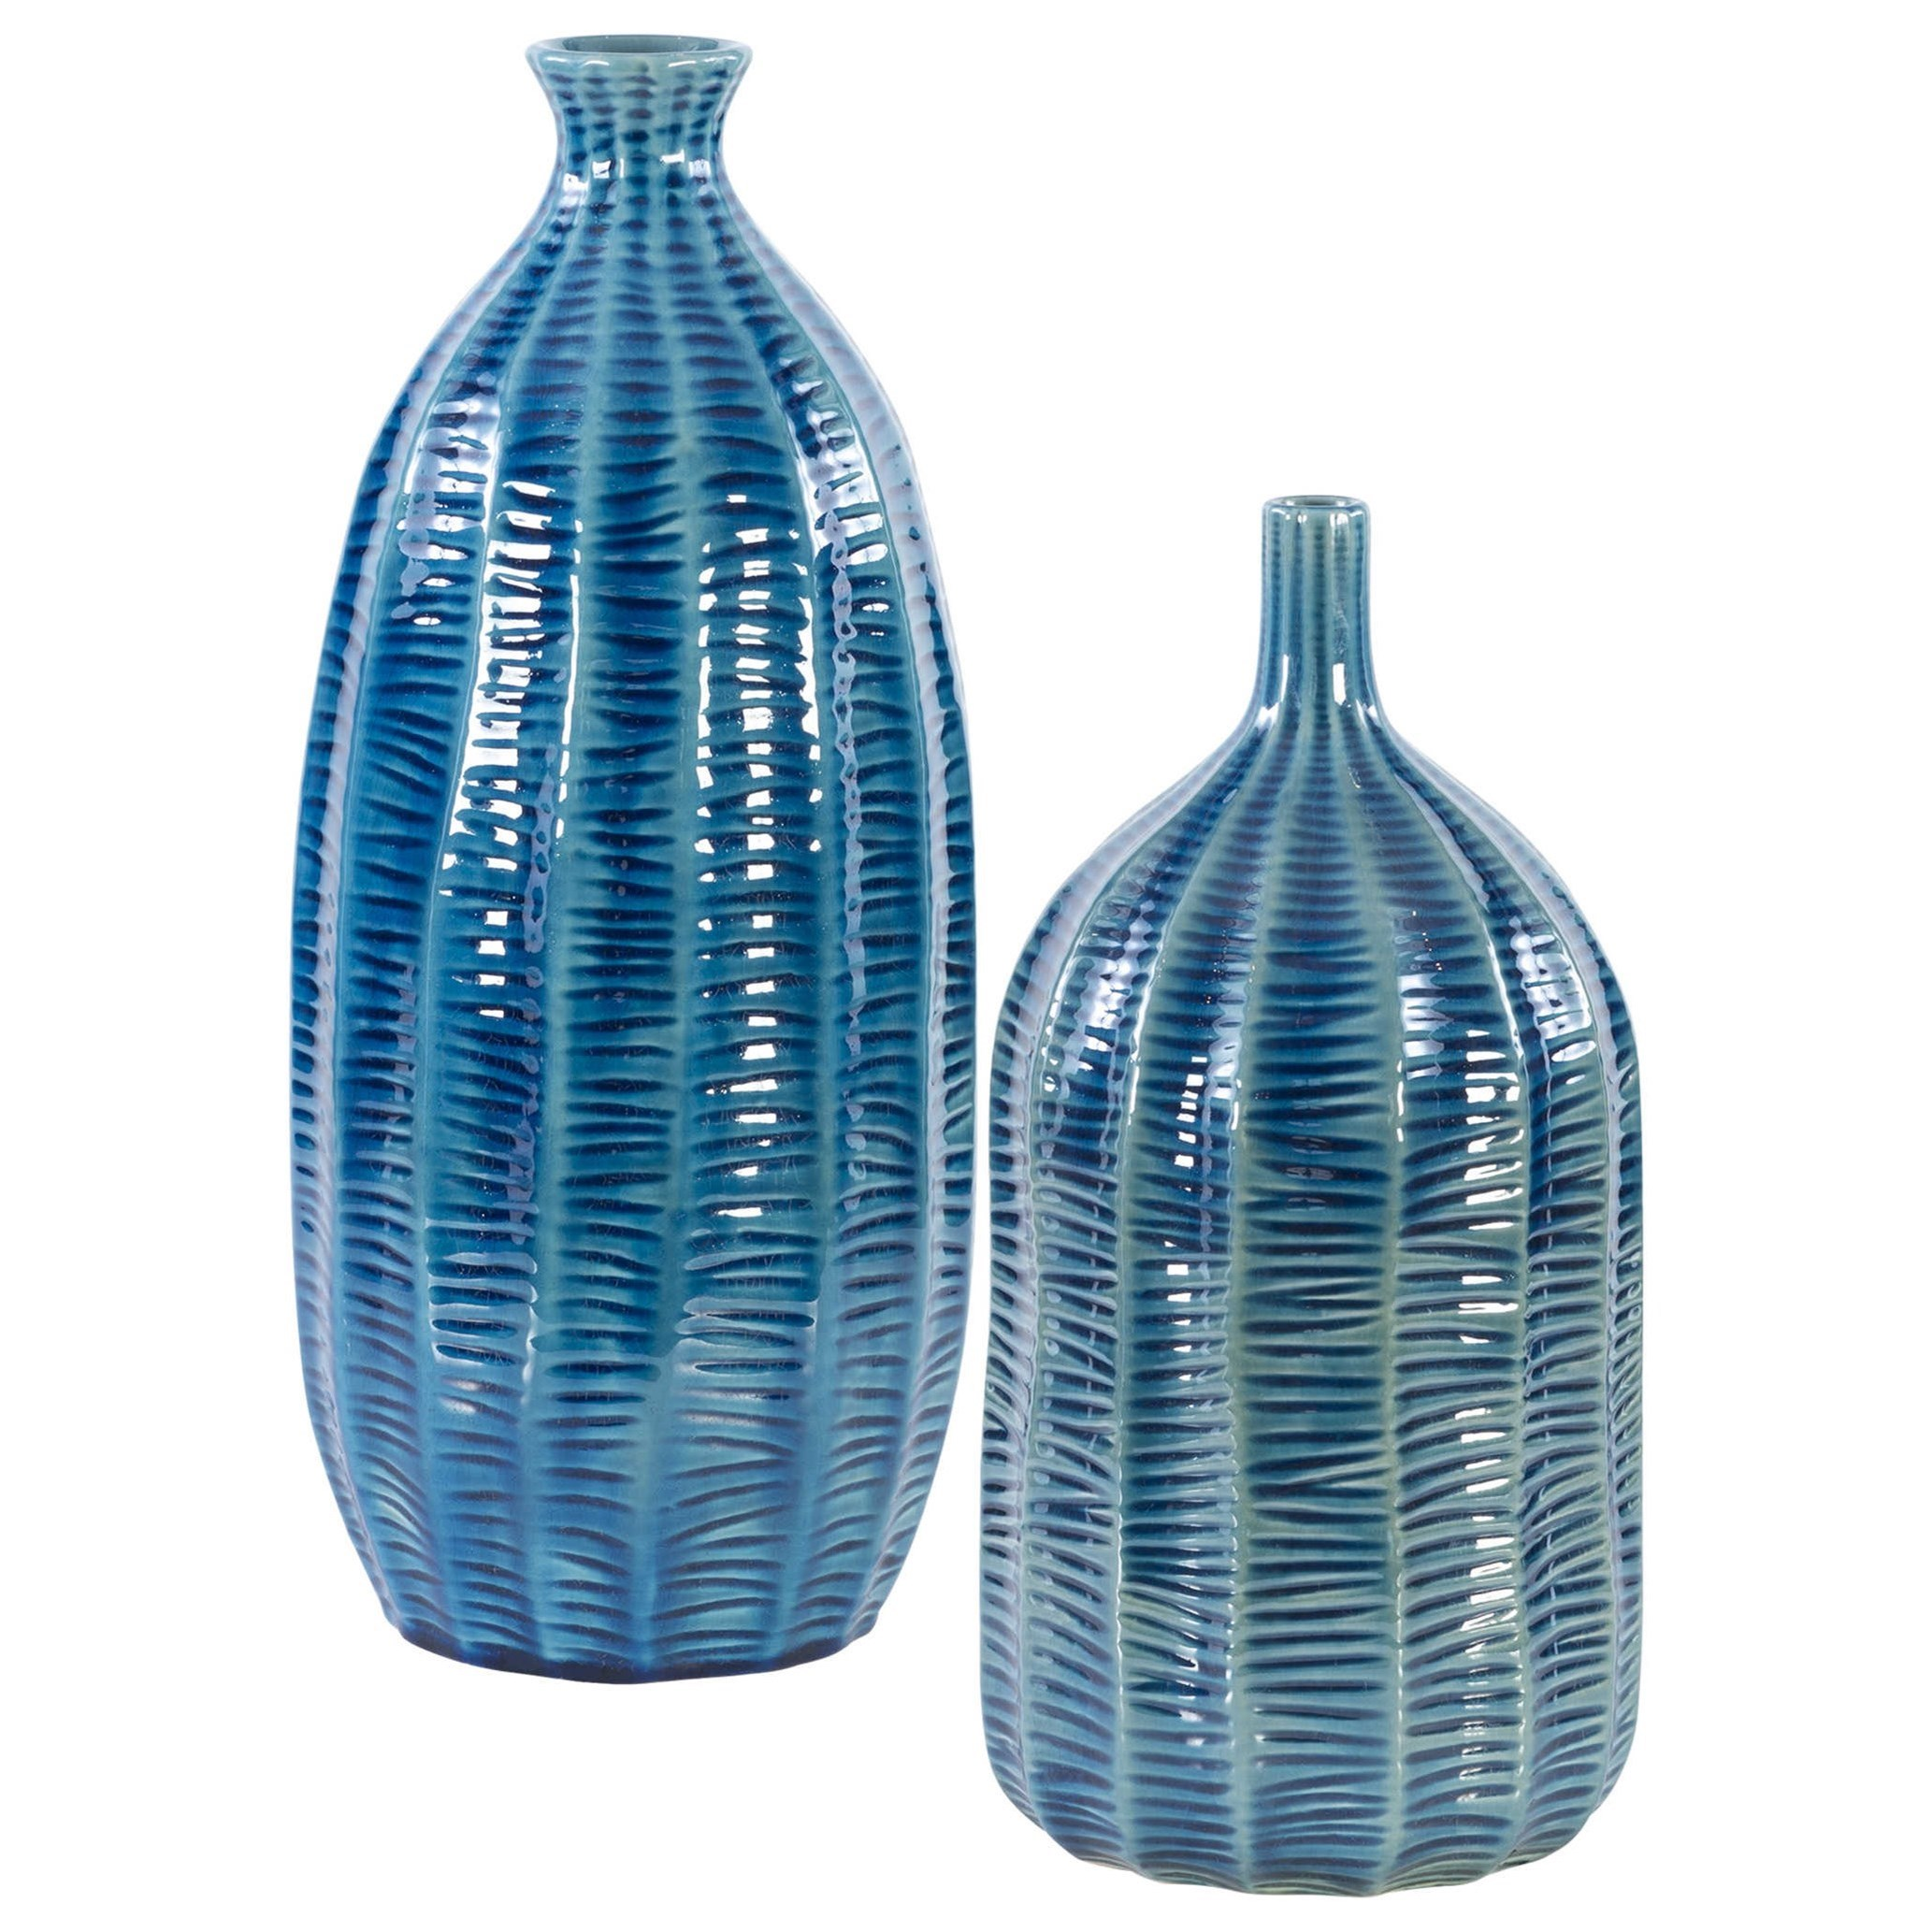 Accessories - Vases and Urns Bixby Blue Vases, S/2 by Uttermost at Suburban Furniture